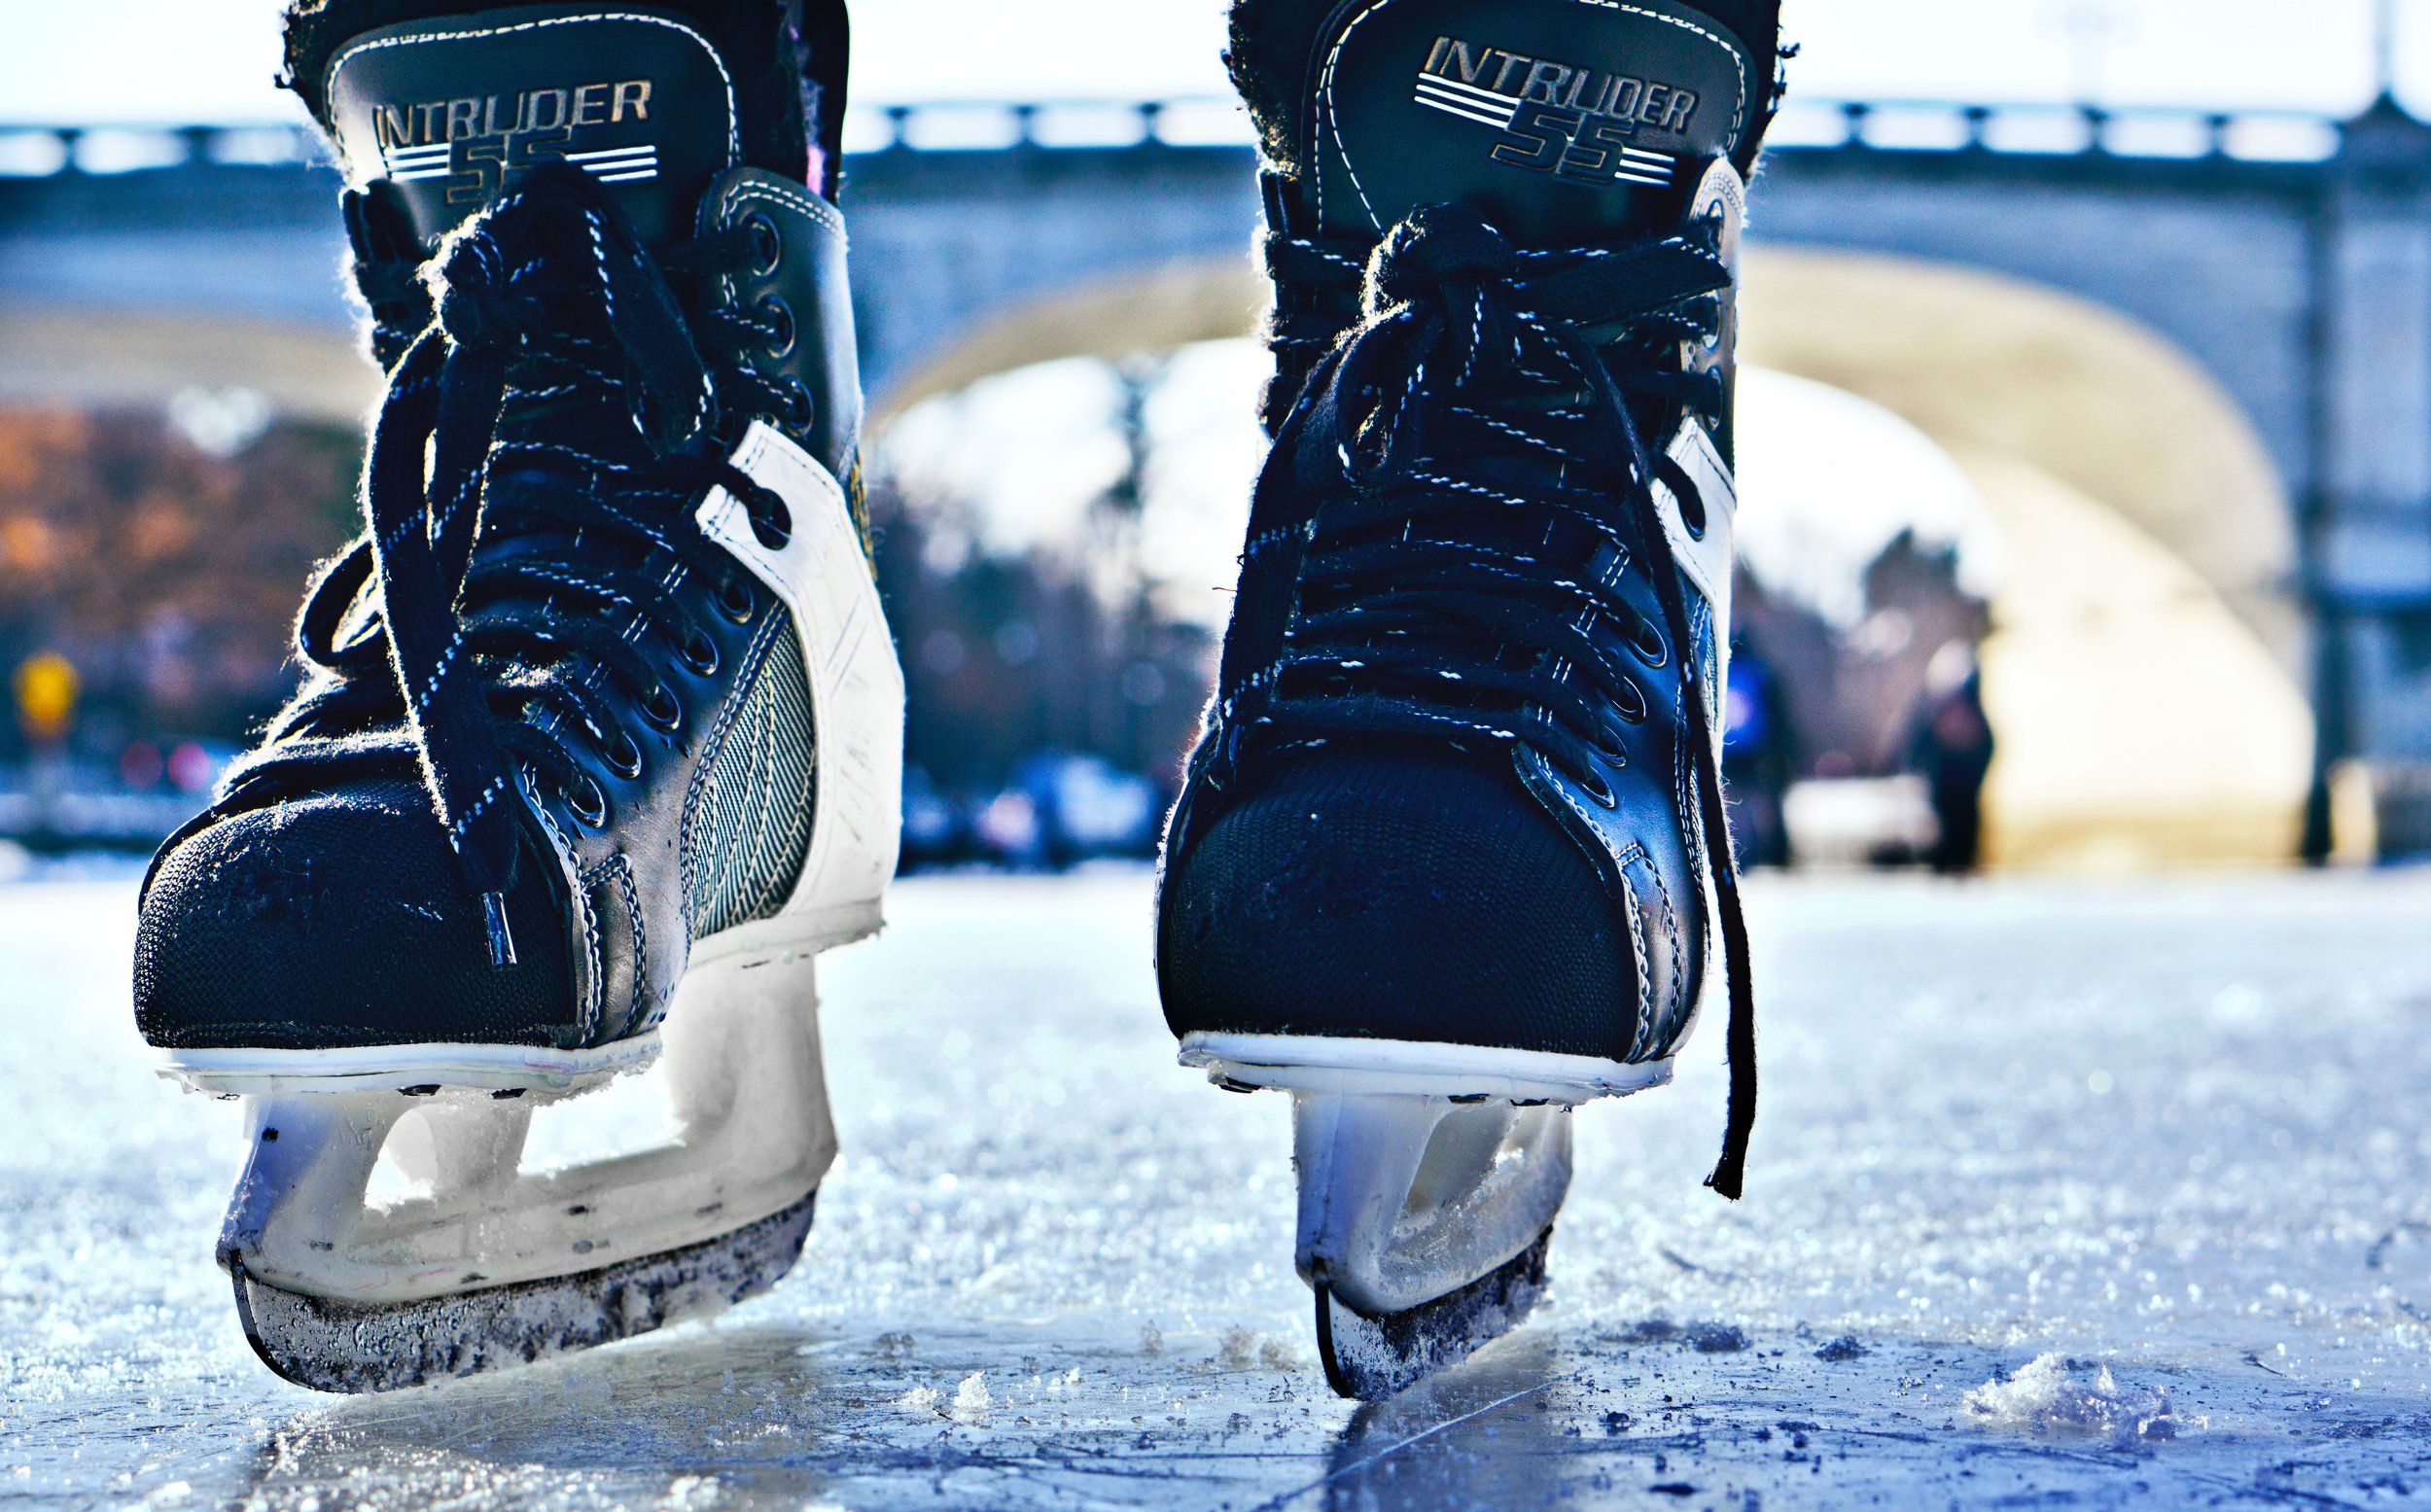 Ice Hockey Injuries - 5 Things You Should Know